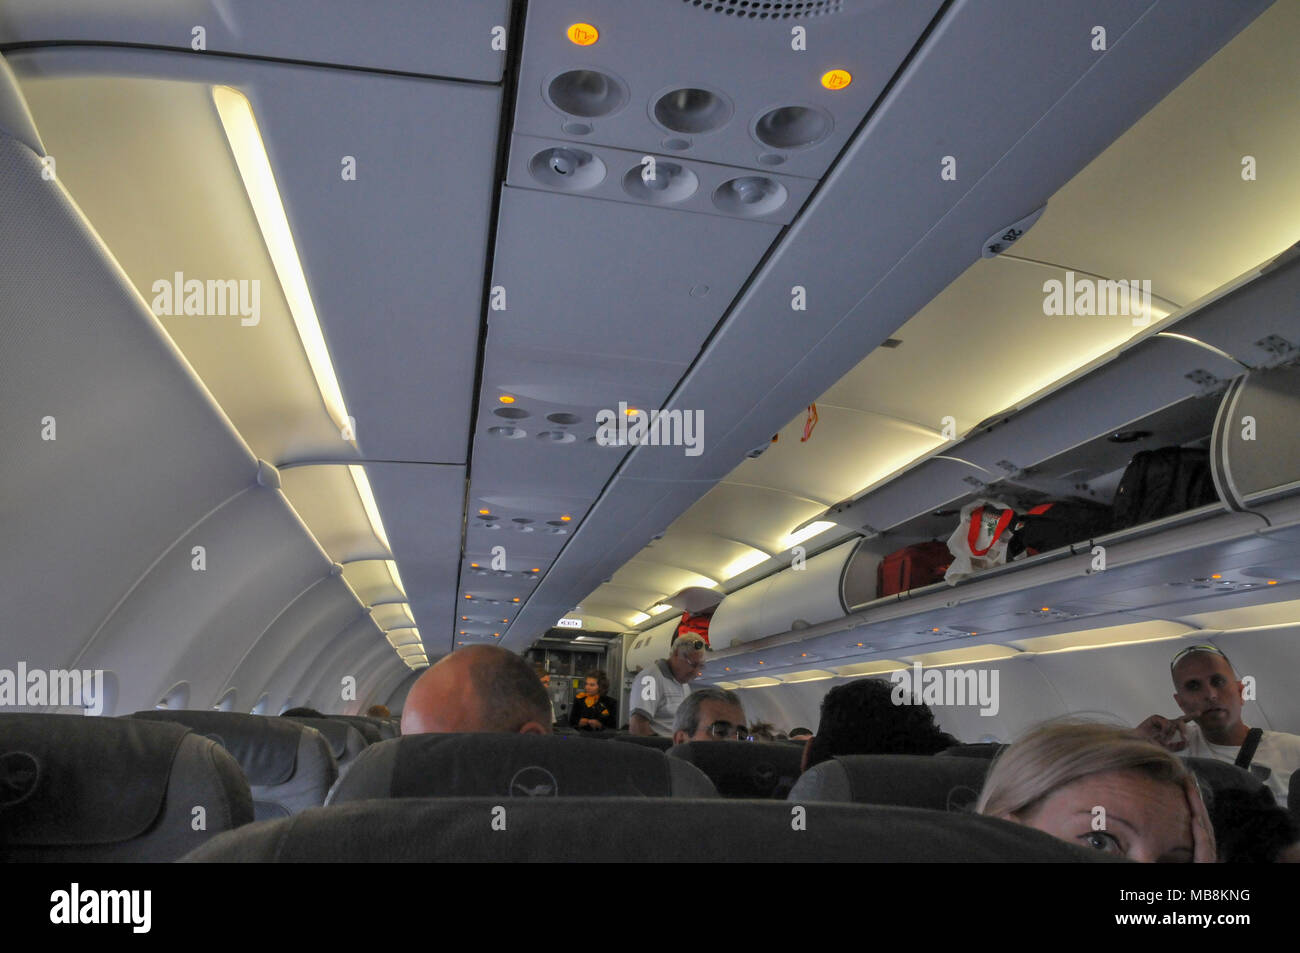 Airline Cabin Stock Photos Airline Cabin Stock Images Alamy